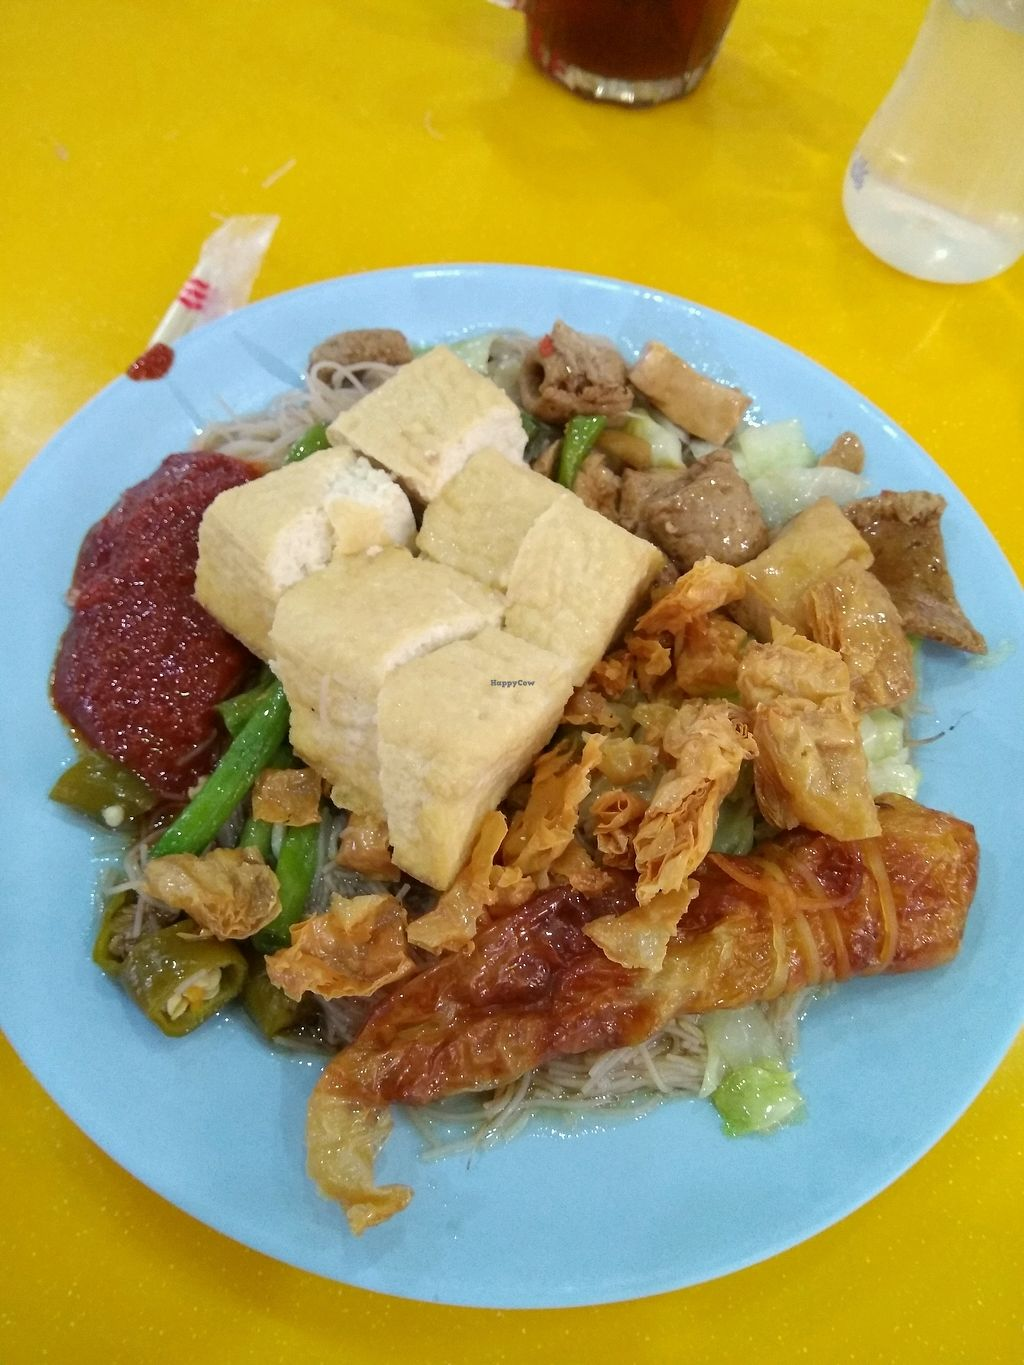 "Photo of Ci Yuan Vegetarian Food  by <a href=""/members/profile/AdelOng"">AdelOng</a> <br/>Added on a beancurd, $3.10  <br/> March 1, 2018  - <a href='/contact/abuse/image/78504/365114'>Report</a>"